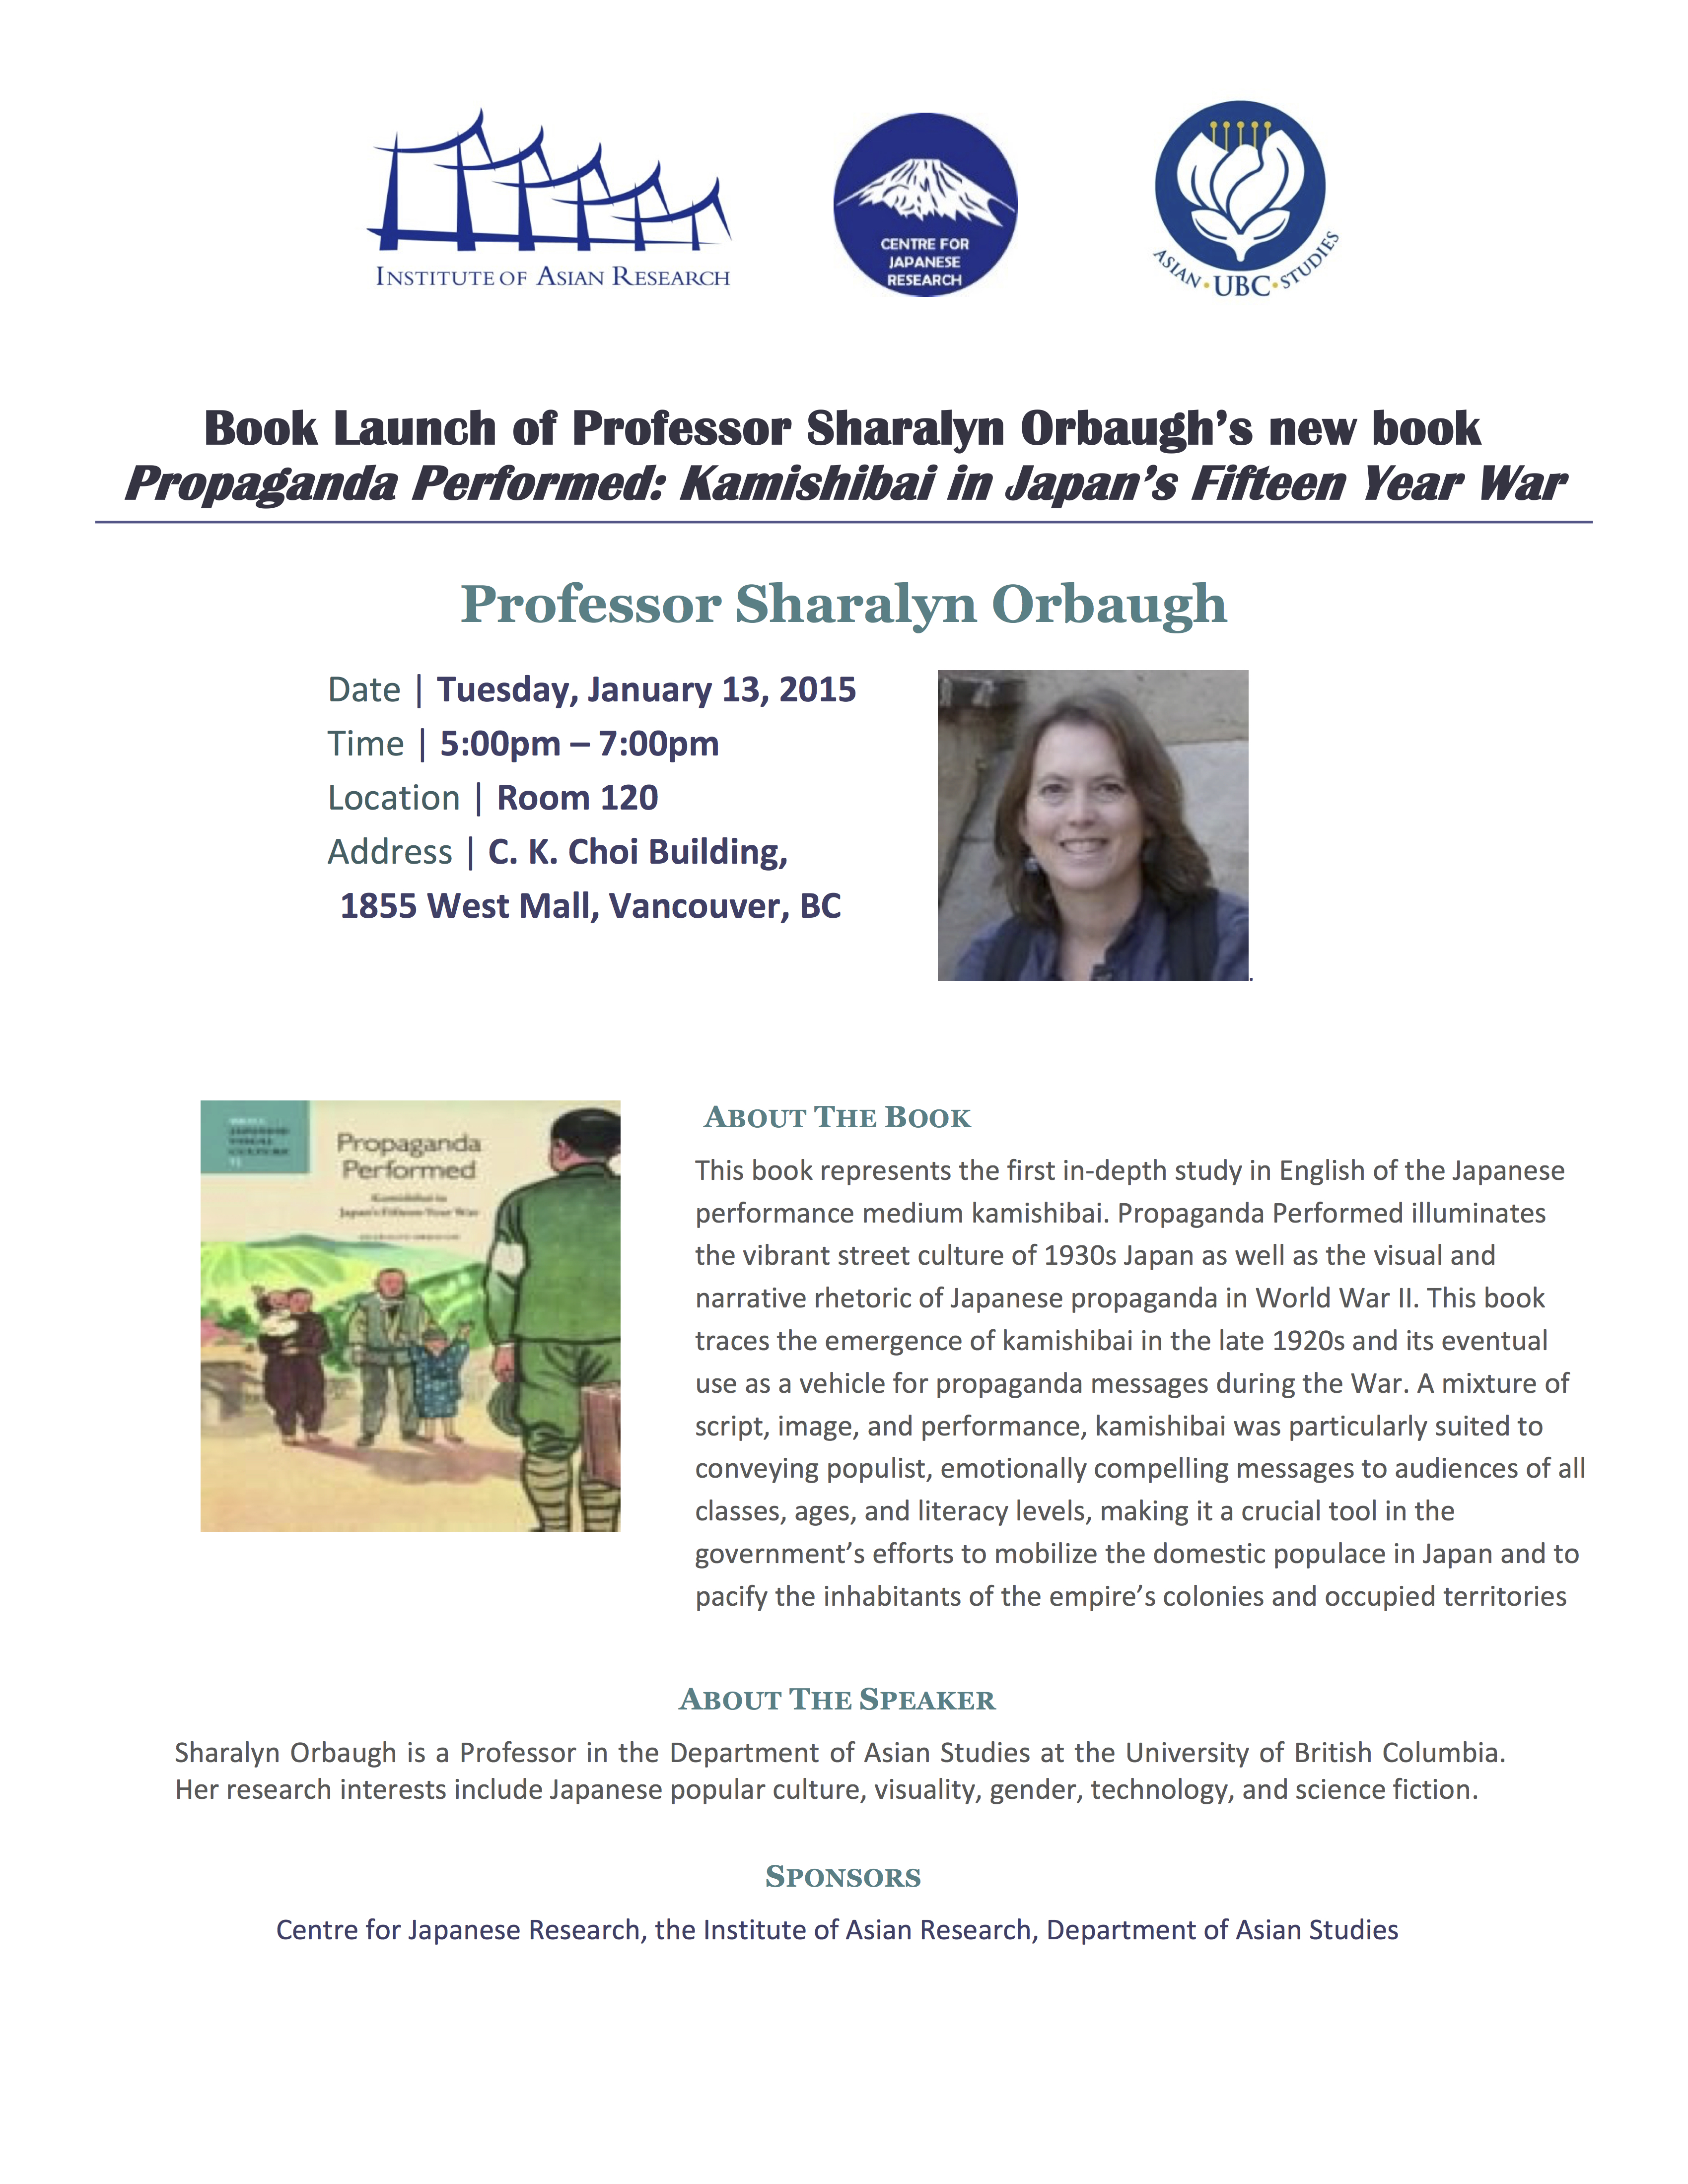 Book launch of Professor Sharalyn Orbaugh Poster